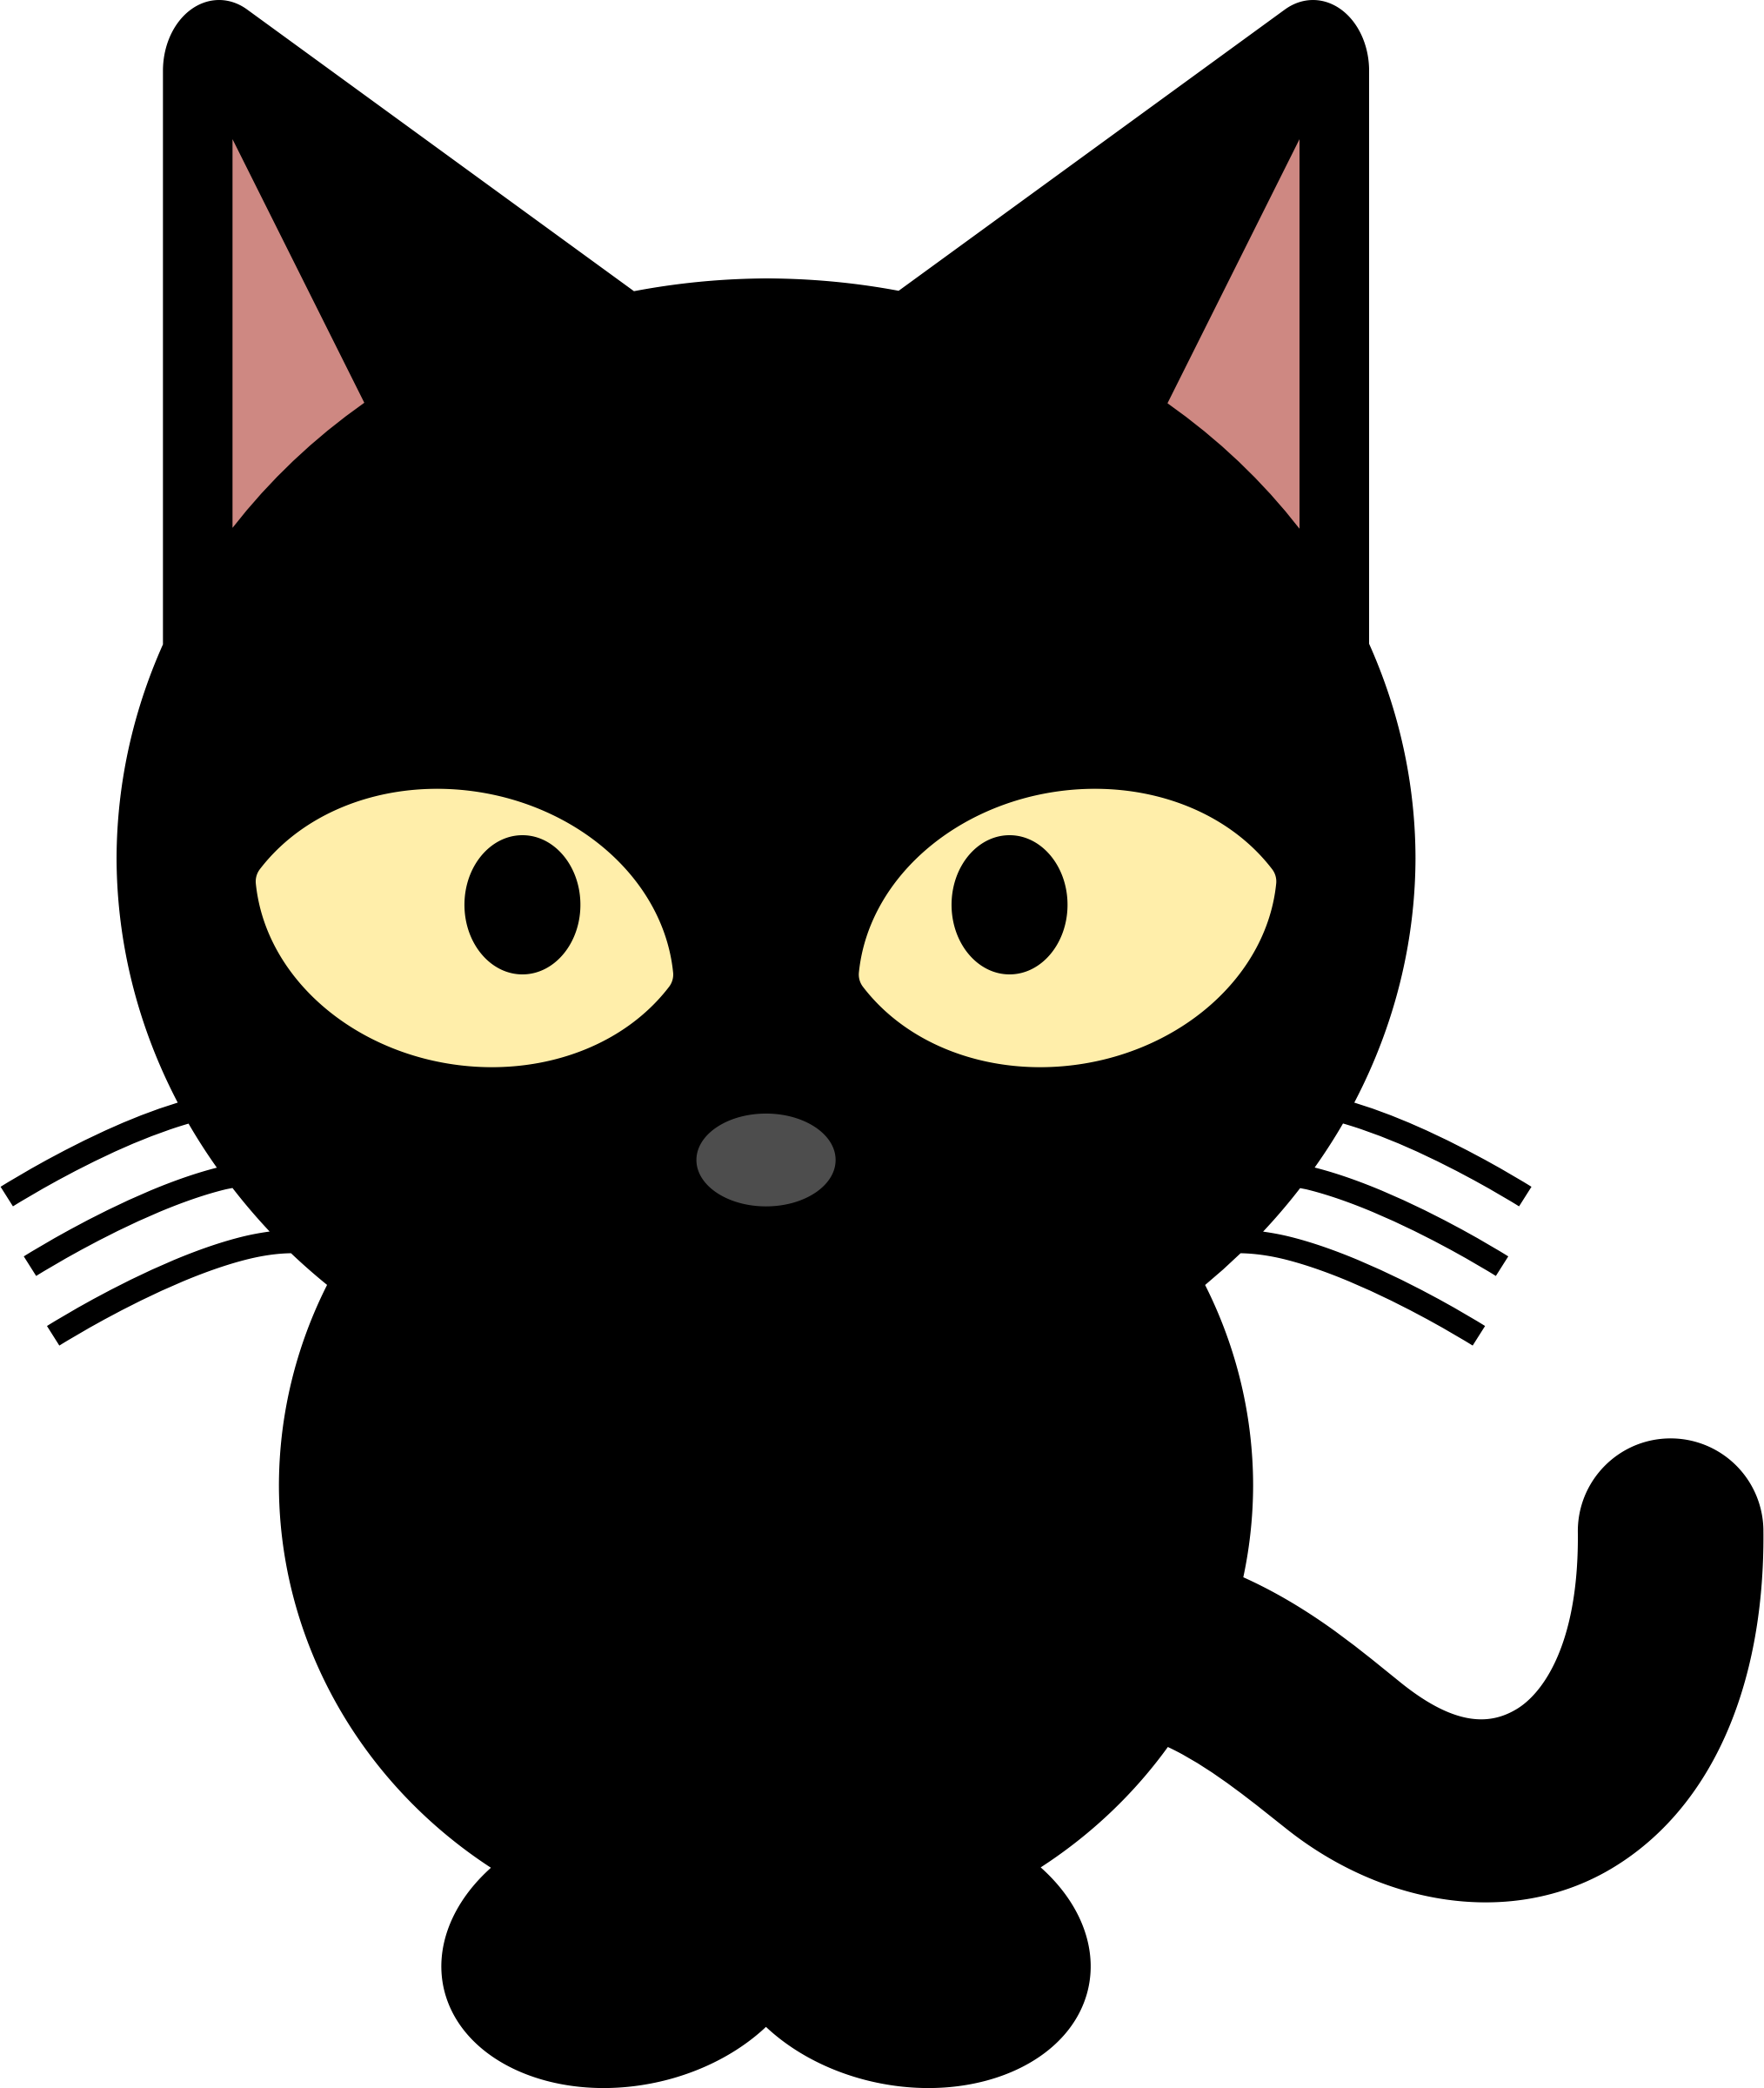 Peeking cat clipart clip transparent download Black Cat by libberry | Cricut Fun | Pinterest | Black cats, Cat and ... clip transparent download